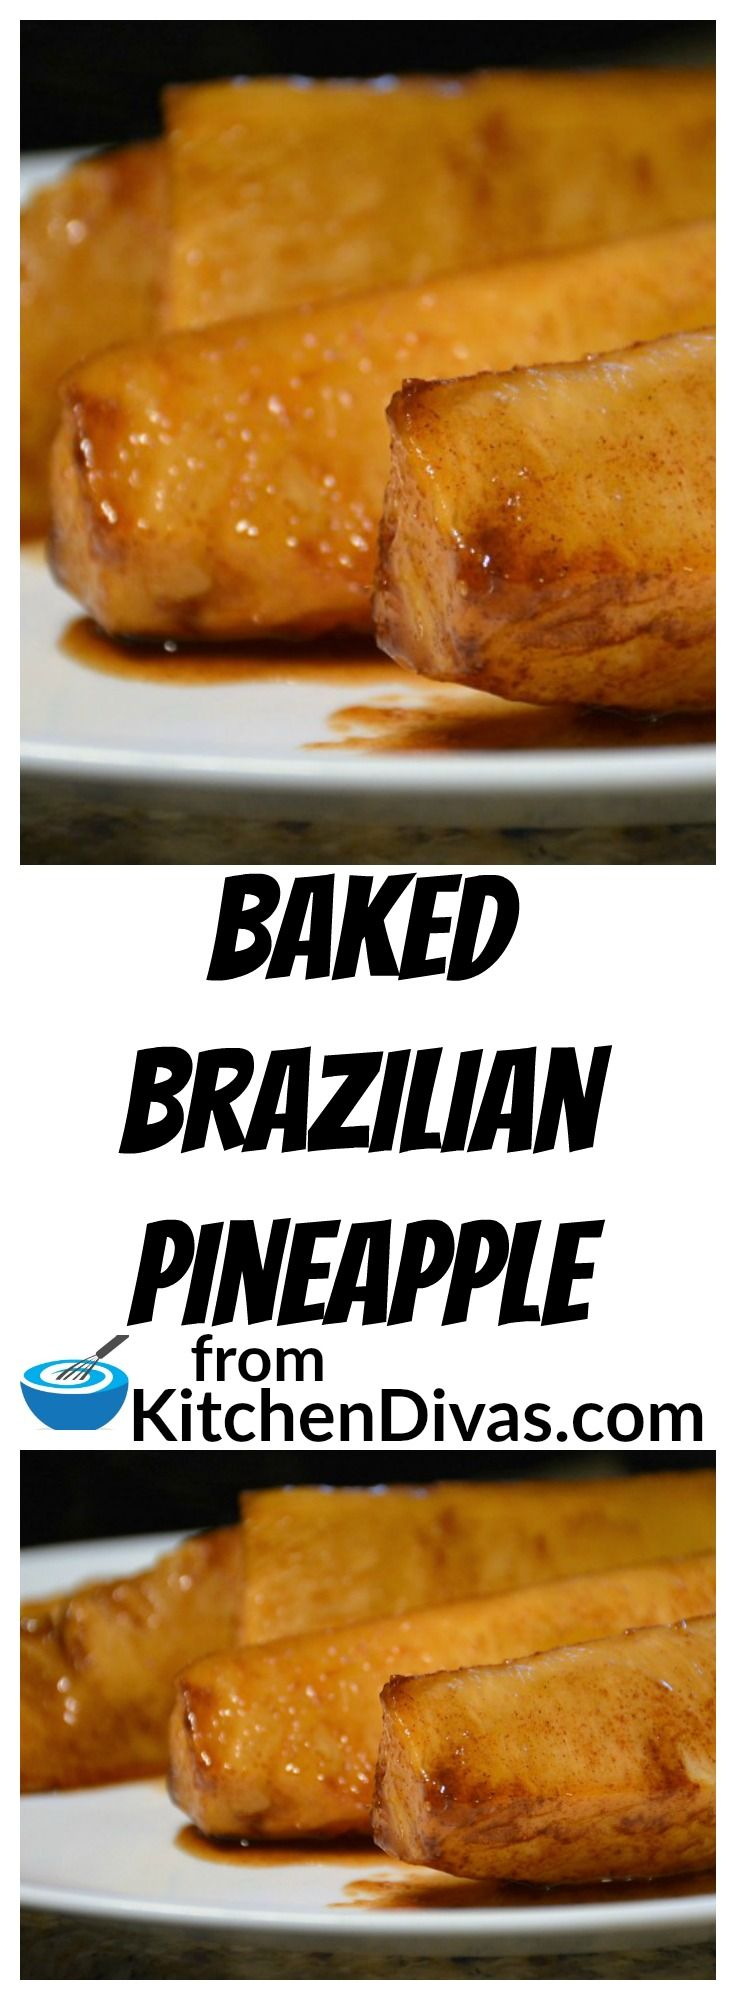 Wow is this pineapple delicious. After first having a grilled version of this pineapple at our favorite Brazilian steak house we had to figure out how to make it at home. Here is the recipe. Enjoy!